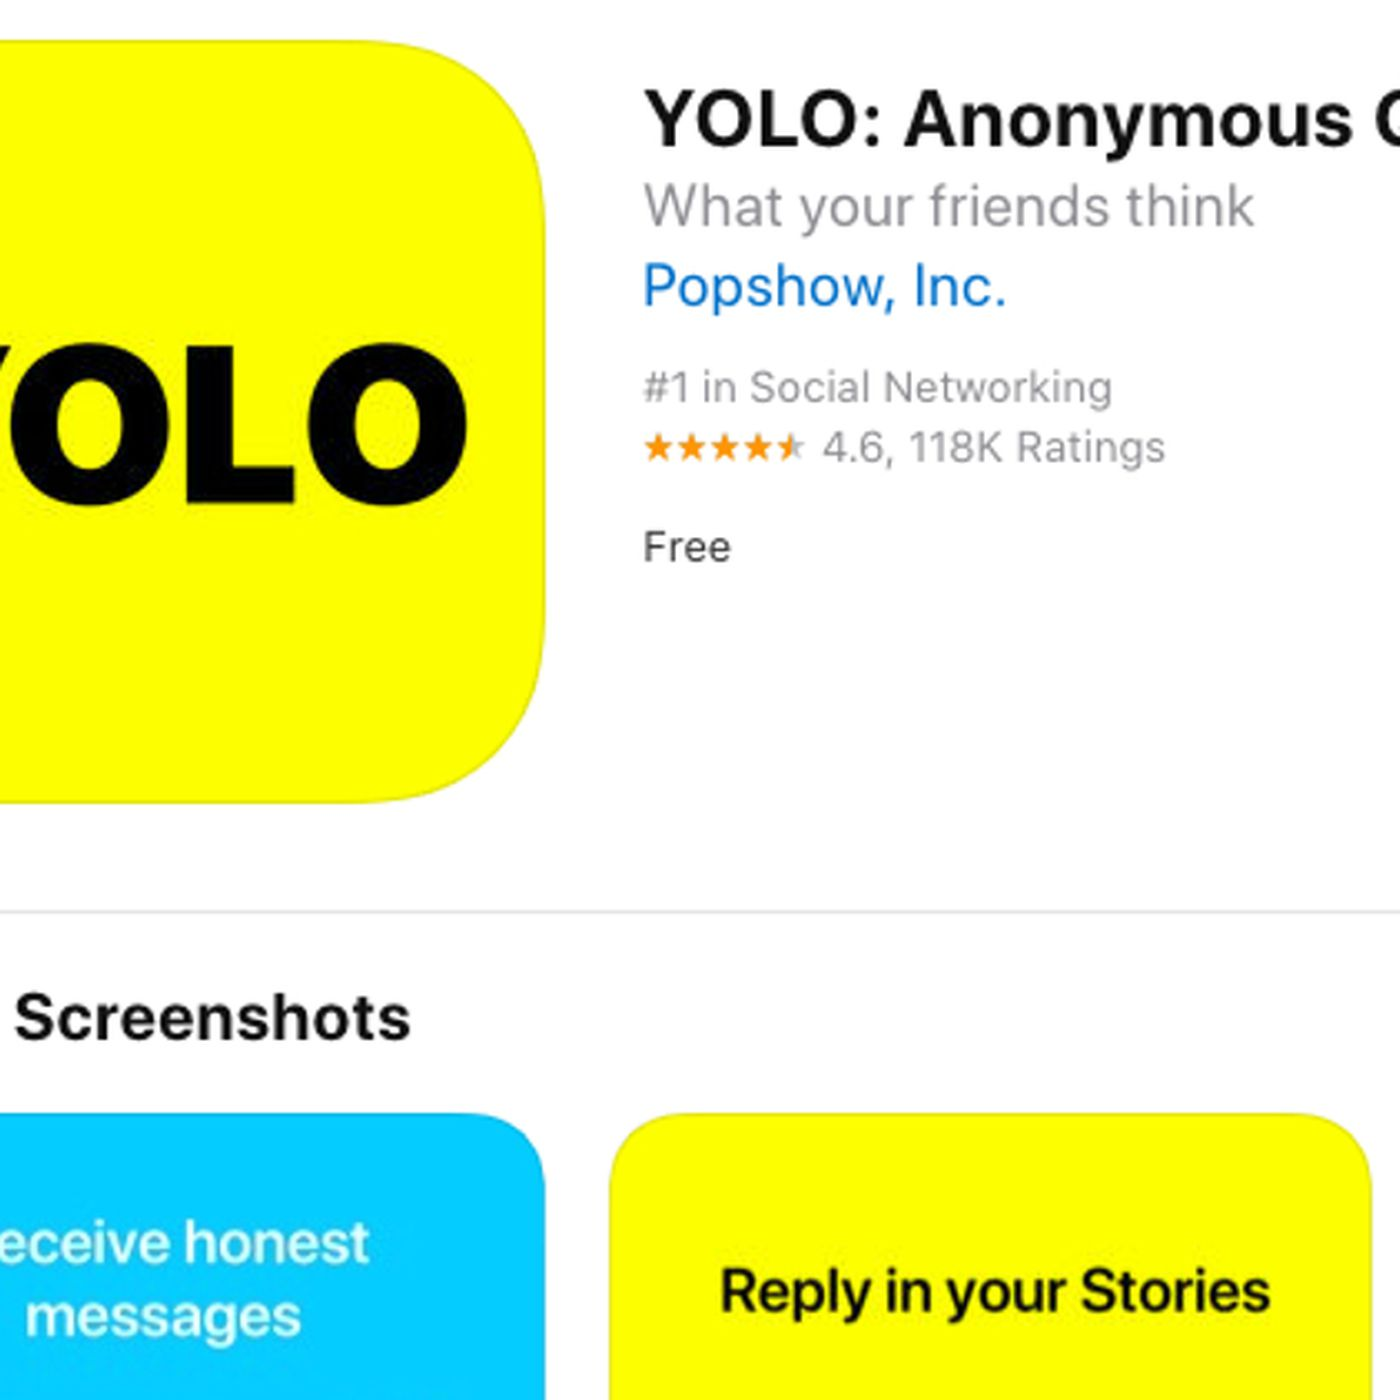 Yolo app on Snapchat: What parents need to know - Deseret News